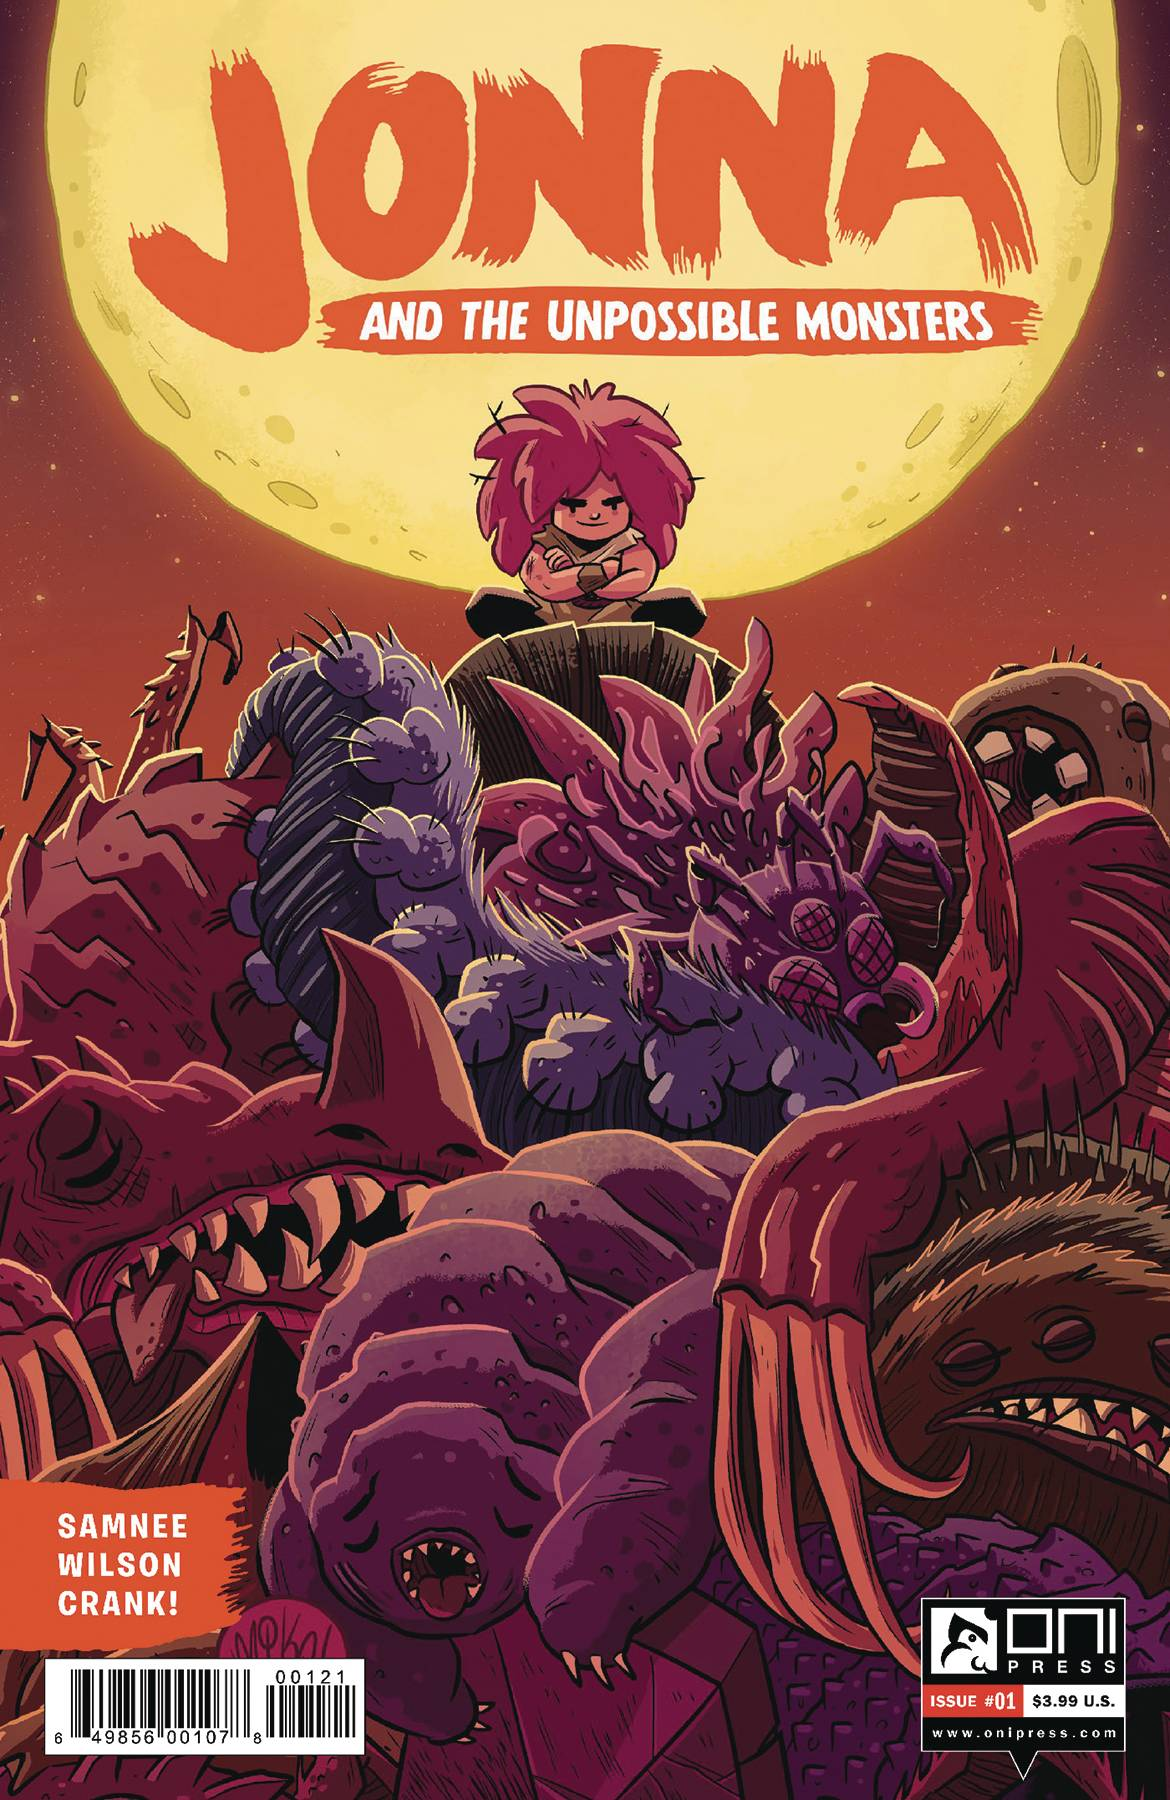 JONNA AND THE UNPOSSIBLE MONSTERS #1 CVR B MAIHACK (RES)